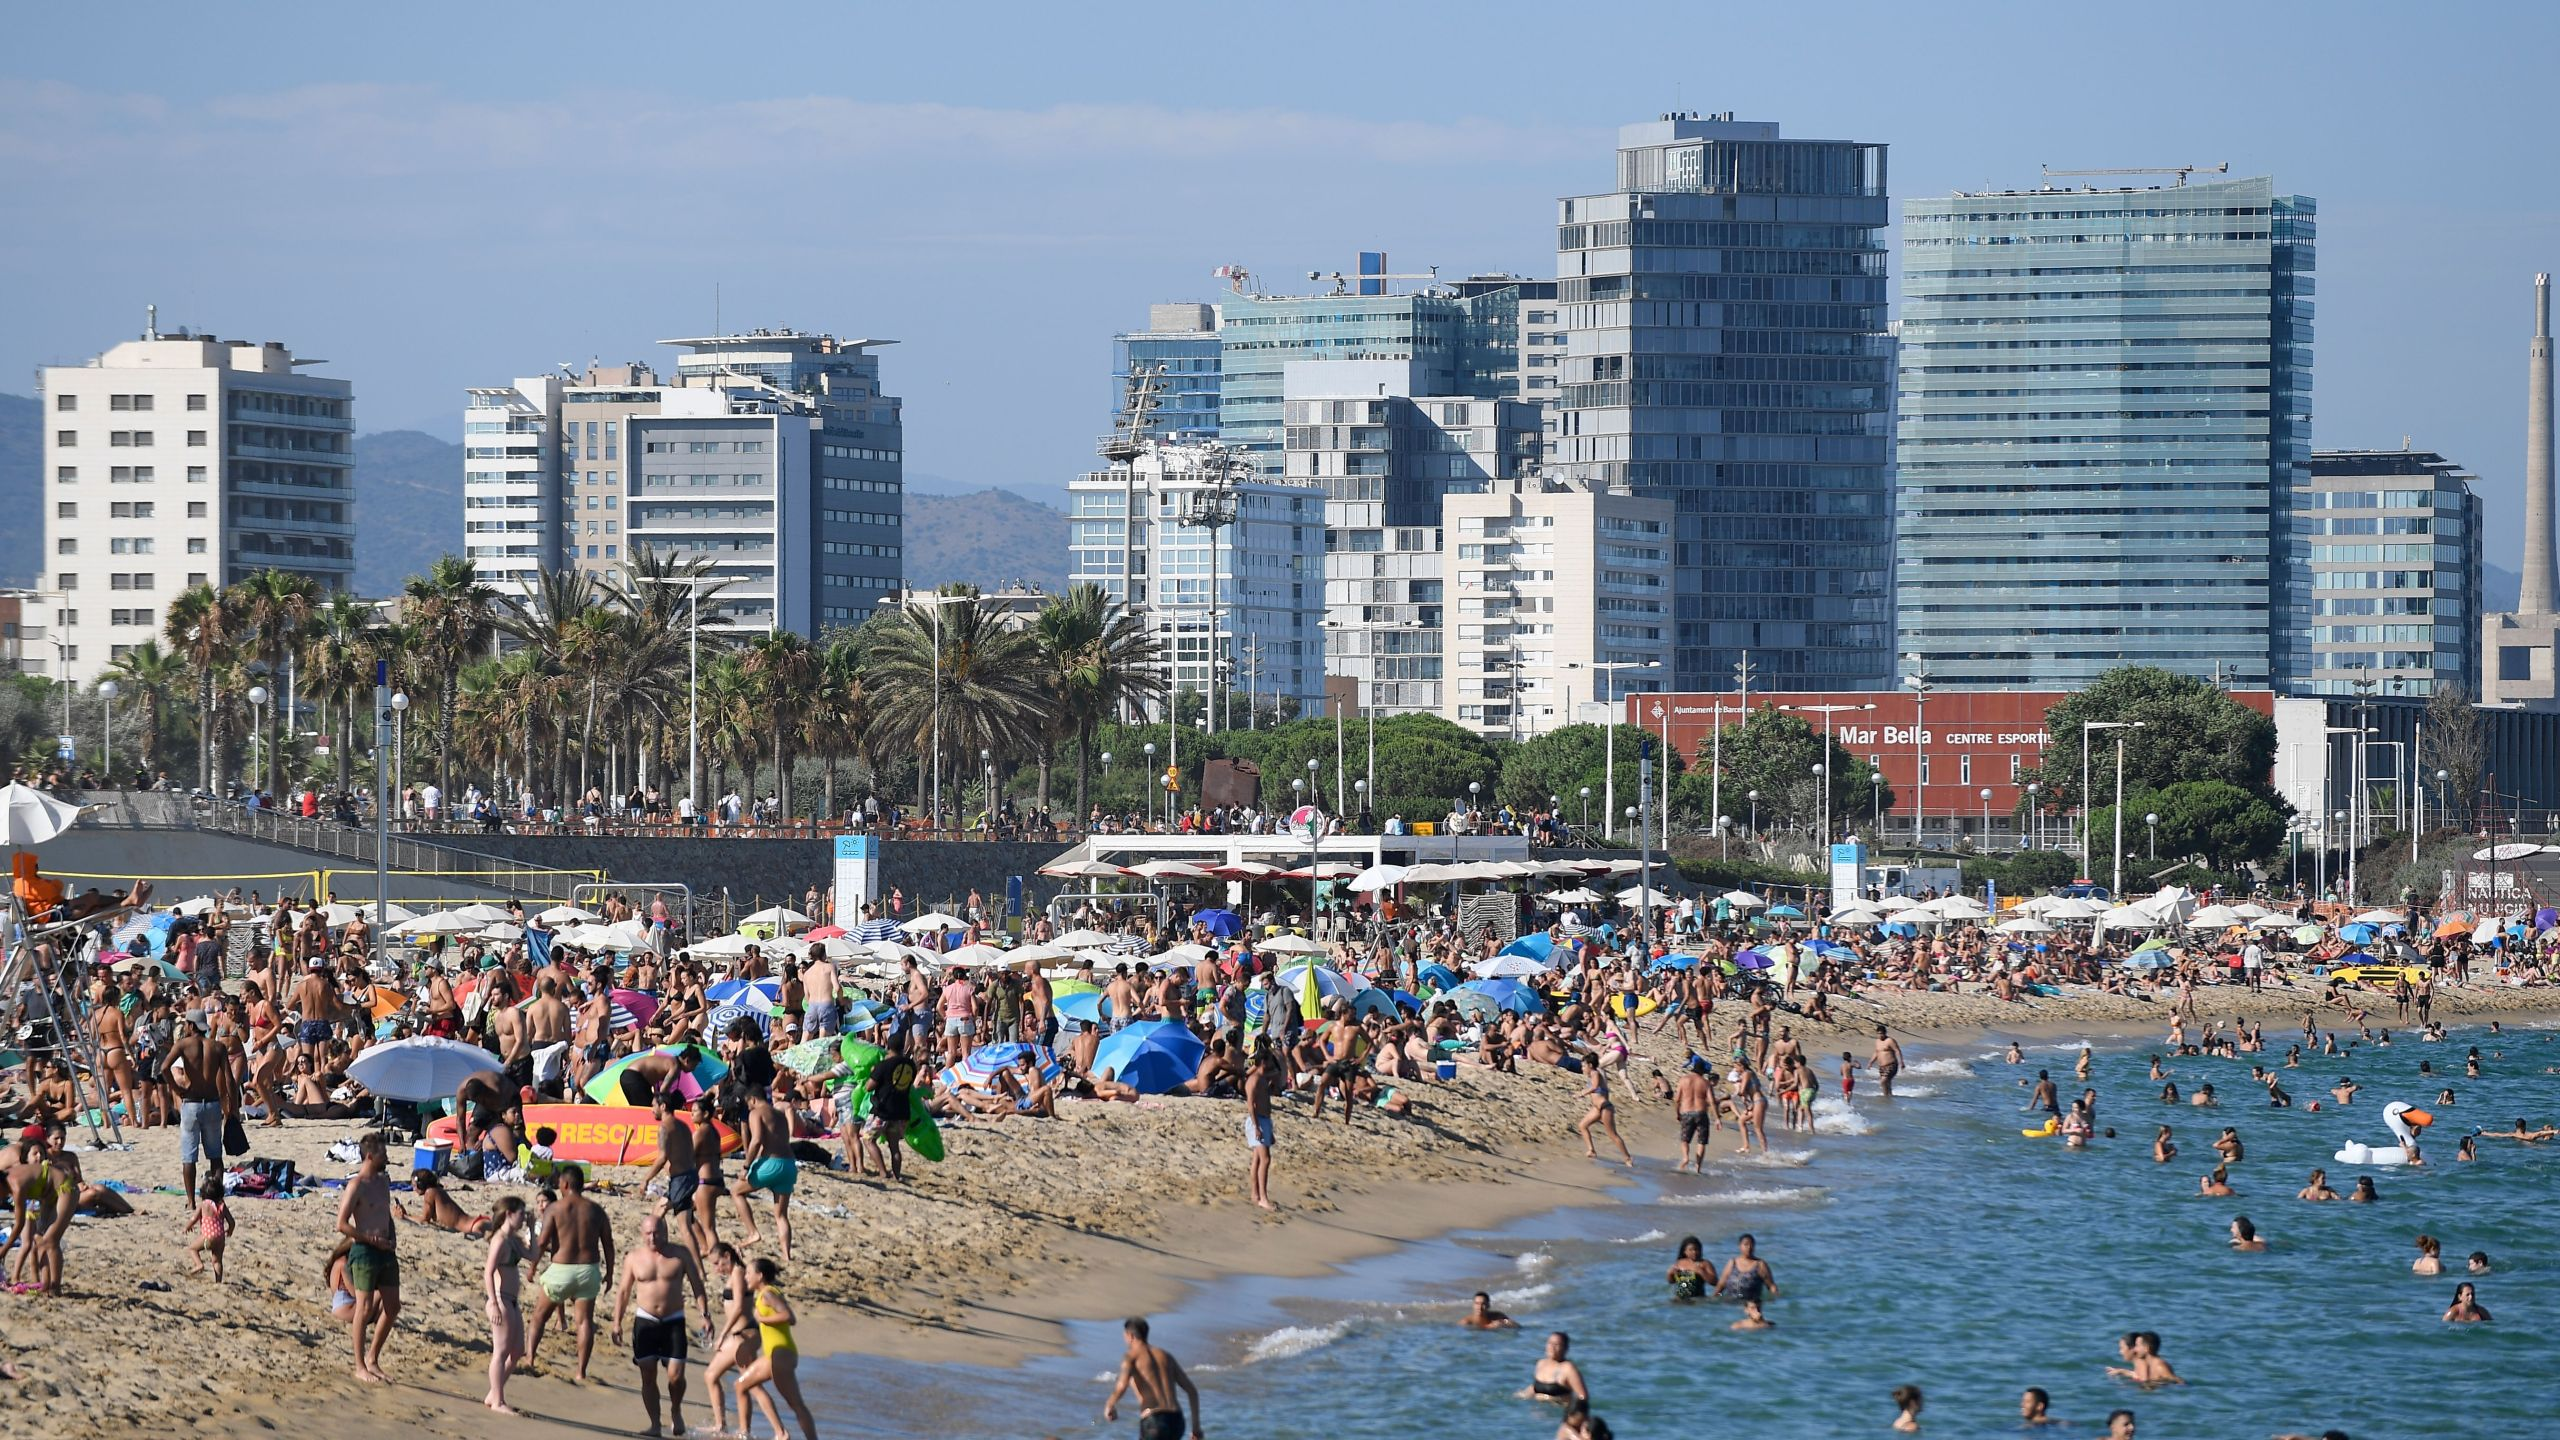 People swim and sunbathe at the Bogatell beach in Barcelona, one of the several sands of the city that have been closed on July 19, 2020, due to reaching the allowed capacity. (Josep LAGO / AFP via Getty Images)